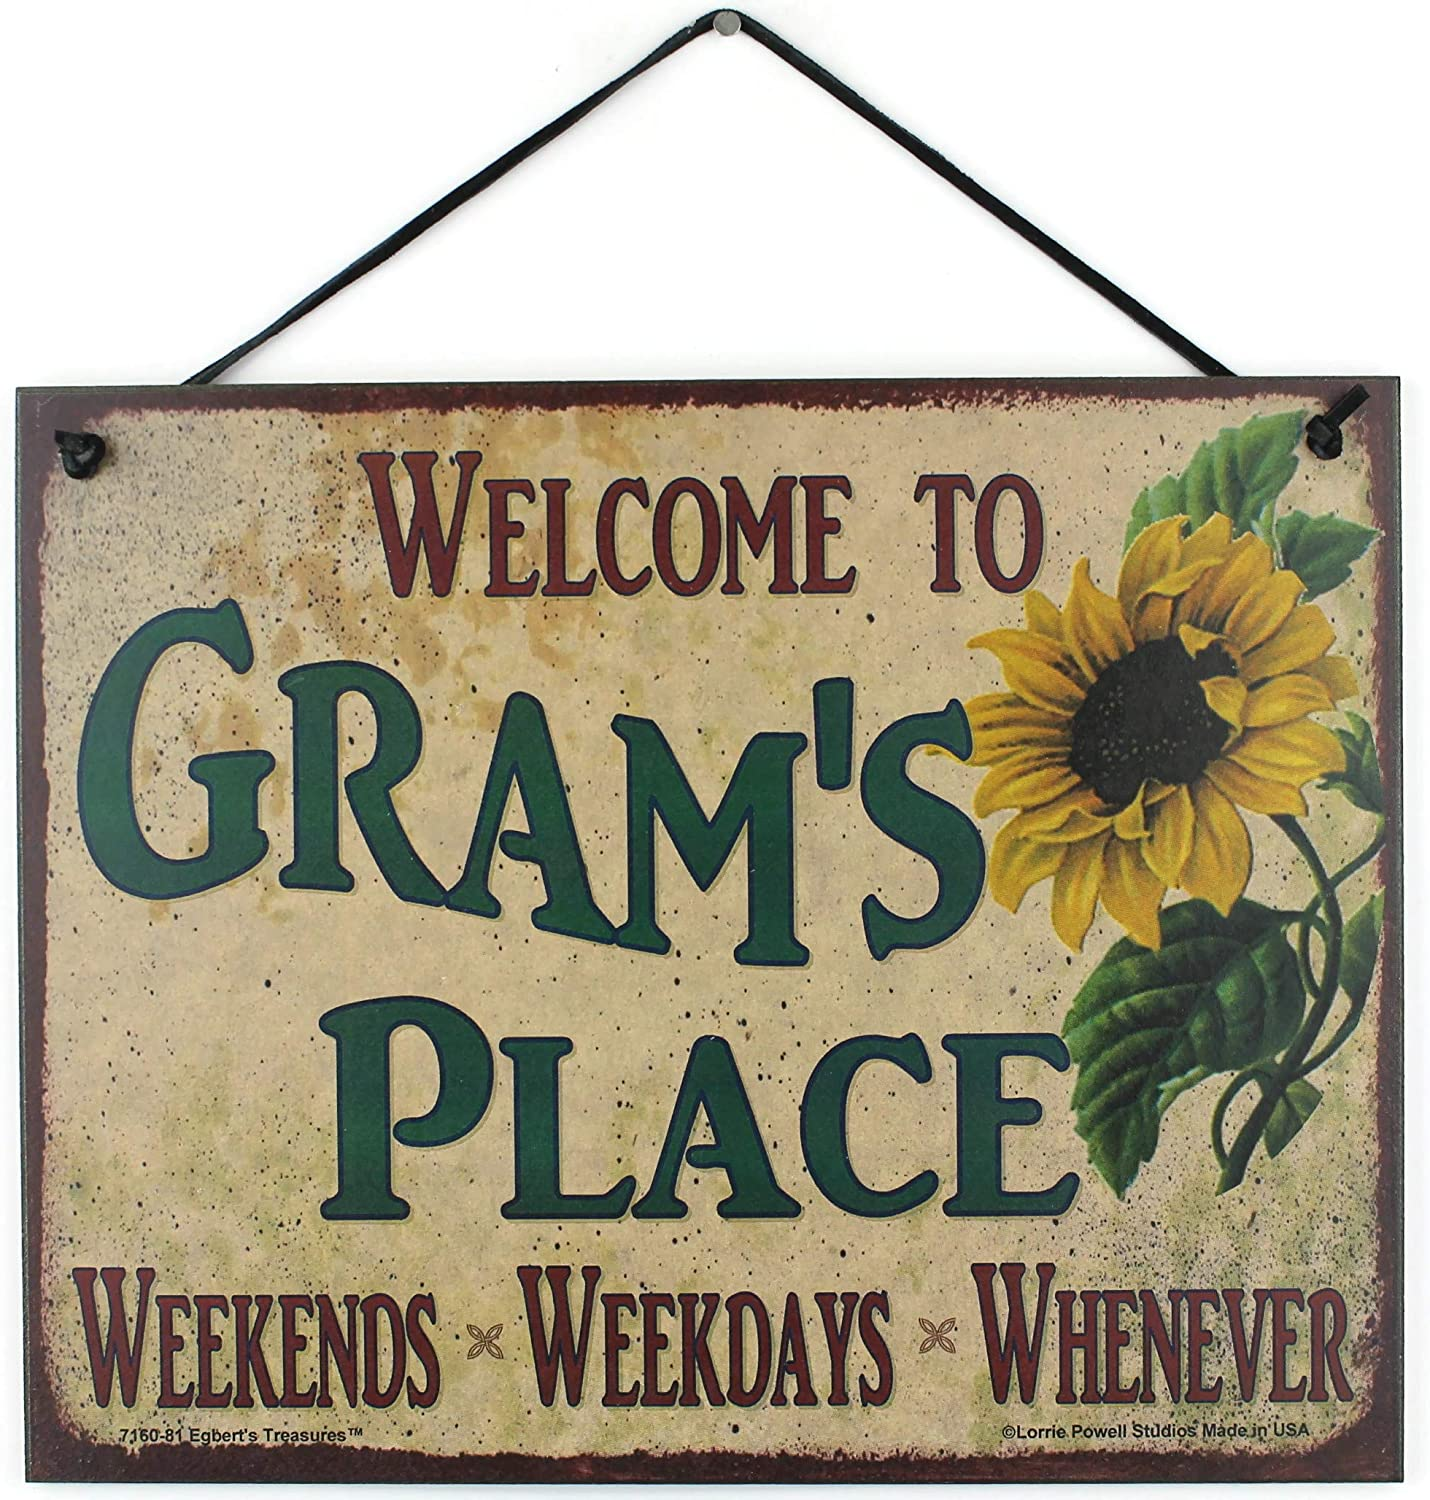 Egbert's Treasures 8x10 Vintage Style Sign with Sunflower Saying, Welcome to Gram's Place Weekends, Weekdays, Whenever Decorative Fun Universal Household Signs for Grandma